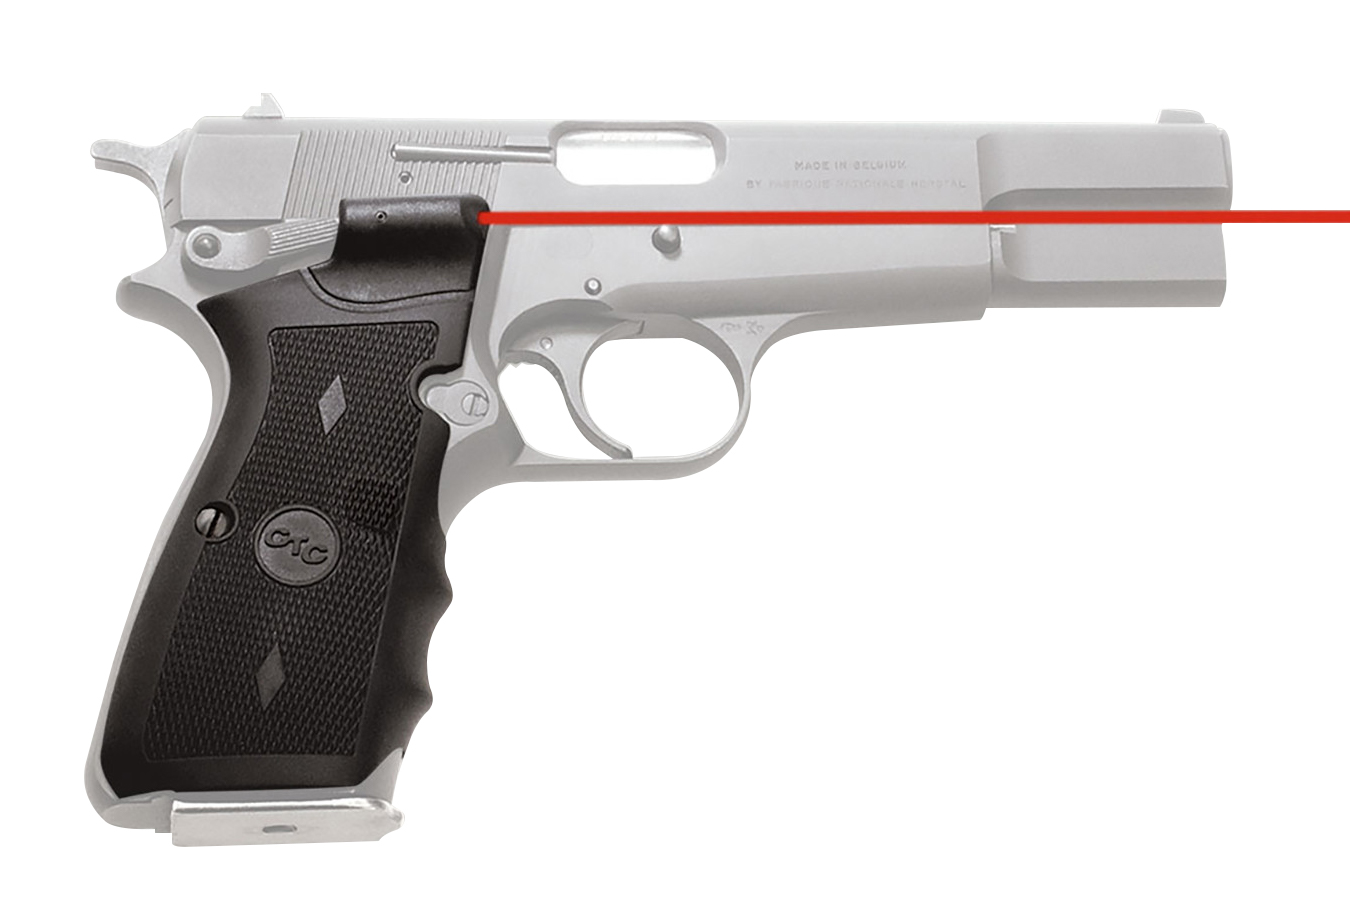 DUAL SIDE ACTIVATION LASERGRIPS FOR BROWNING HI-POWER